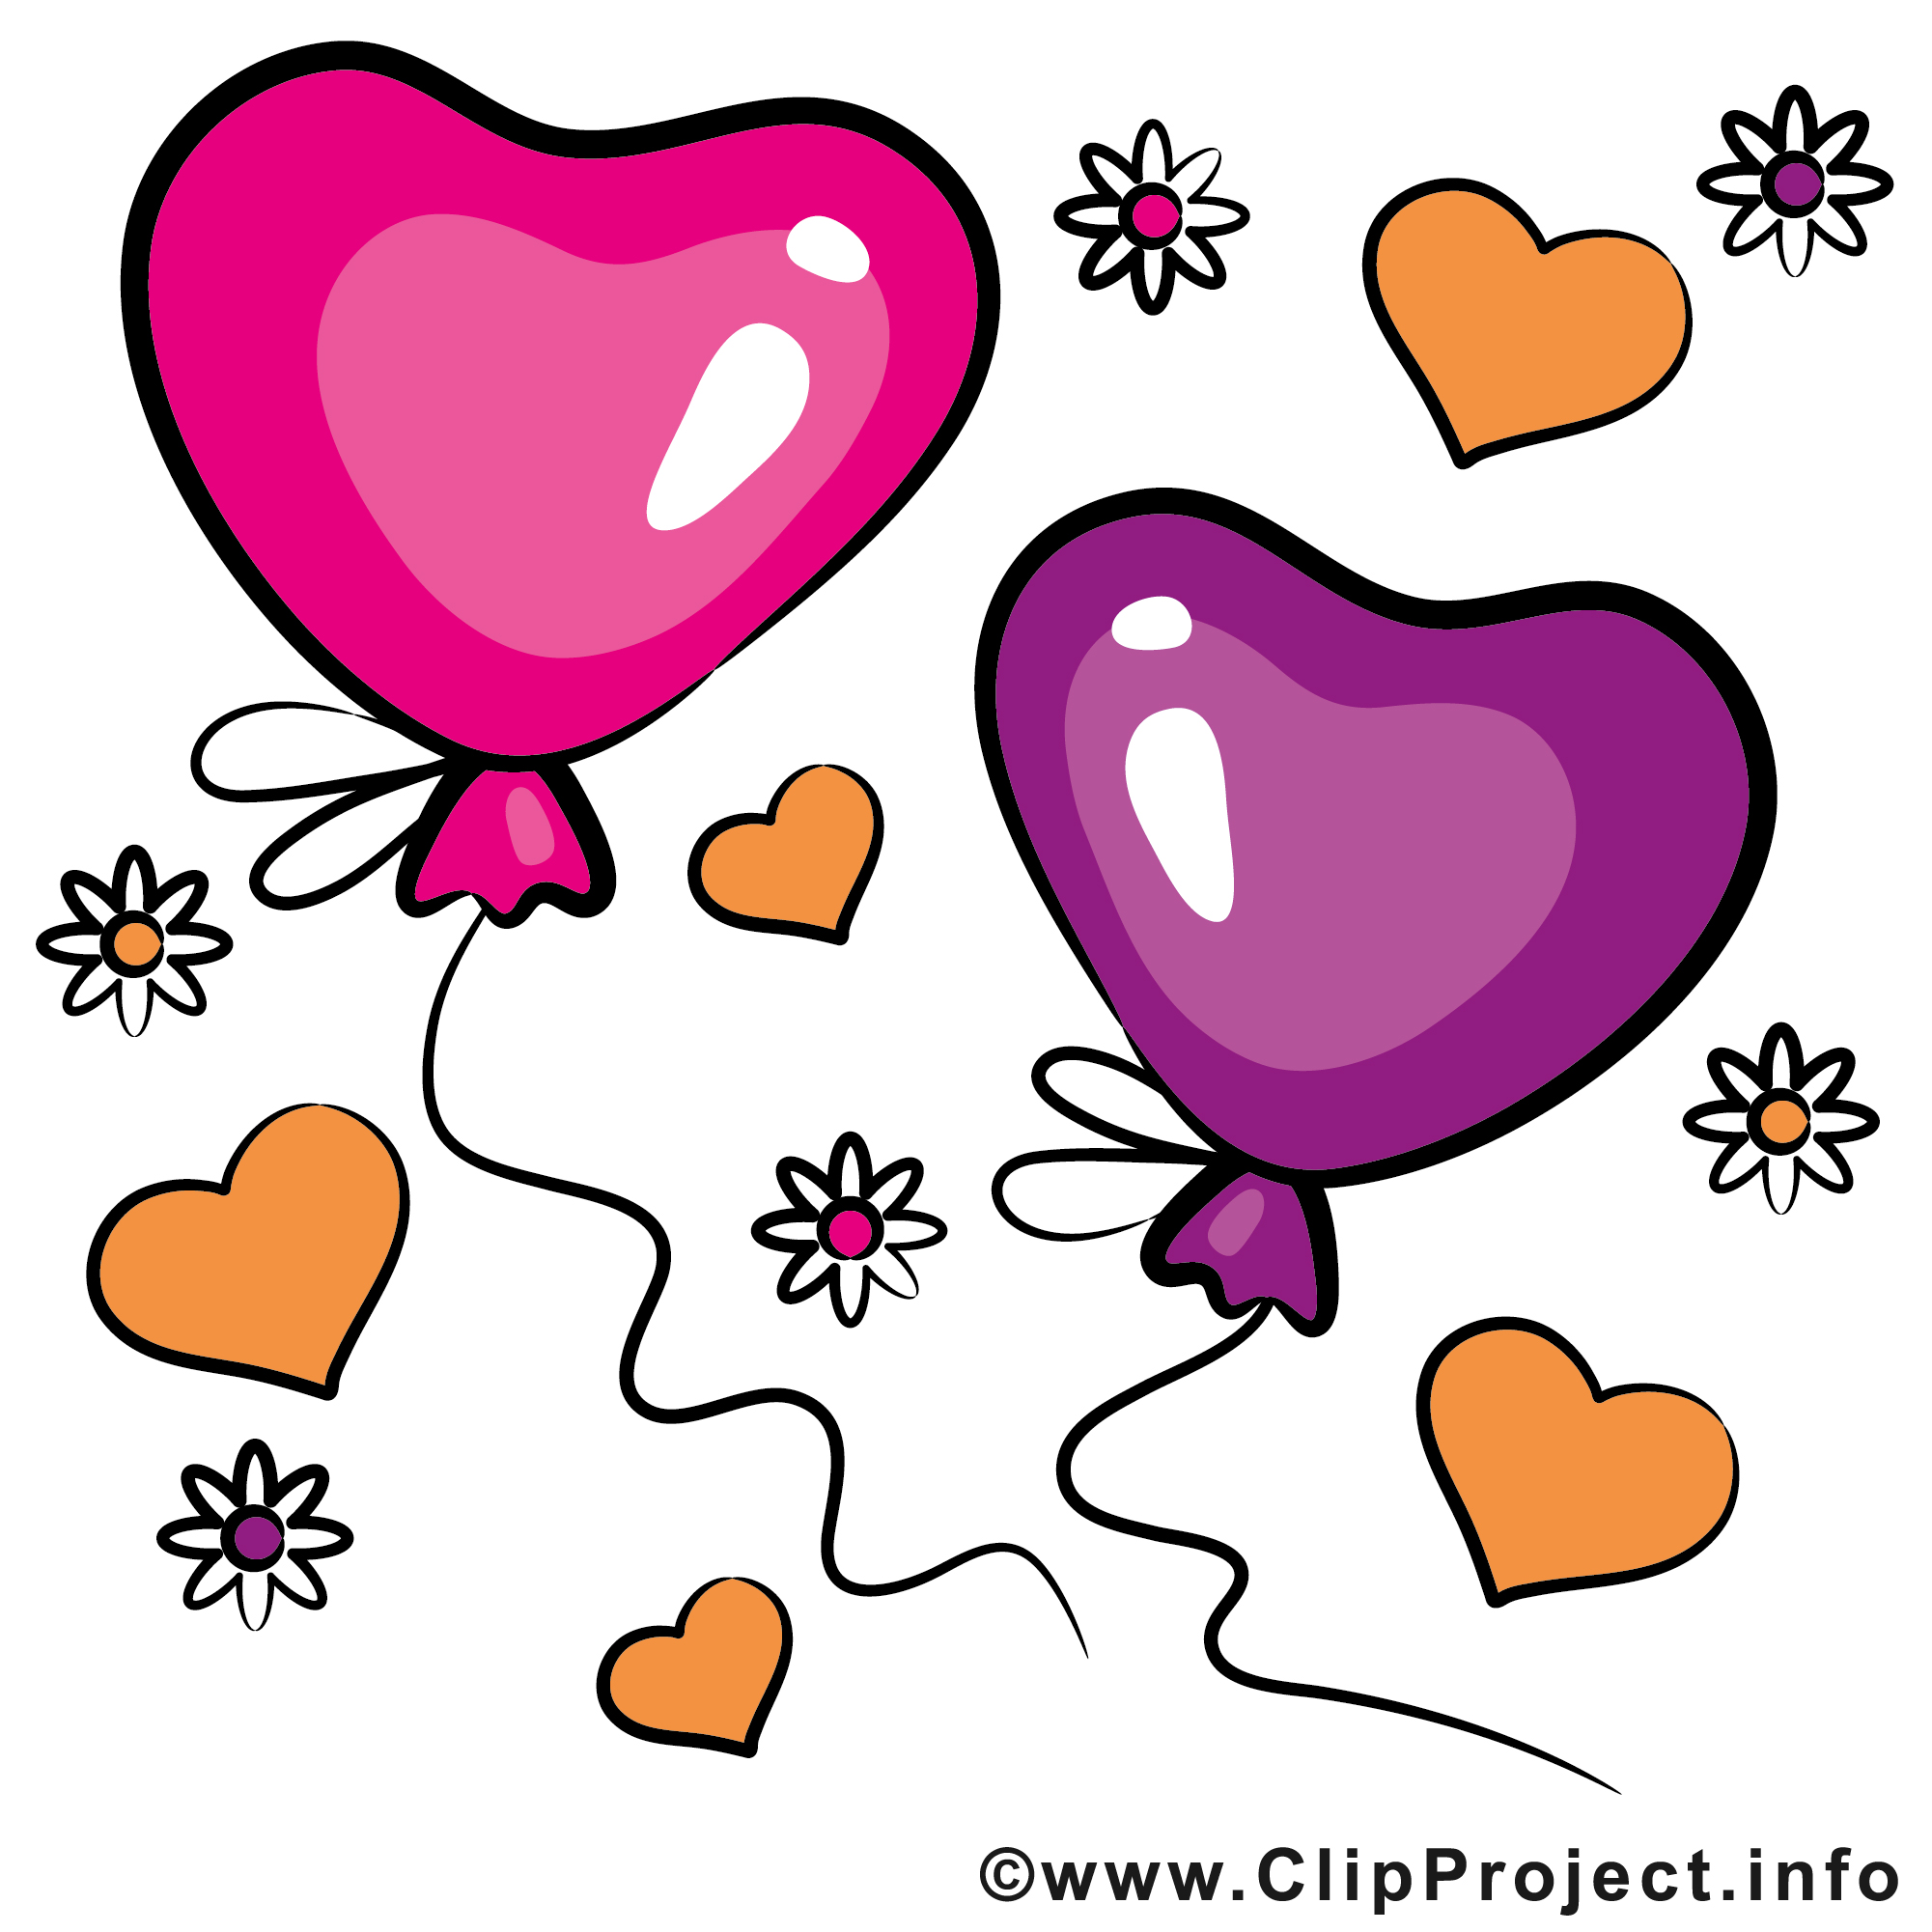 ballons dessin saint valentin cliparts t l charger saint valentin cartes mariage dessin. Black Bedroom Furniture Sets. Home Design Ideas